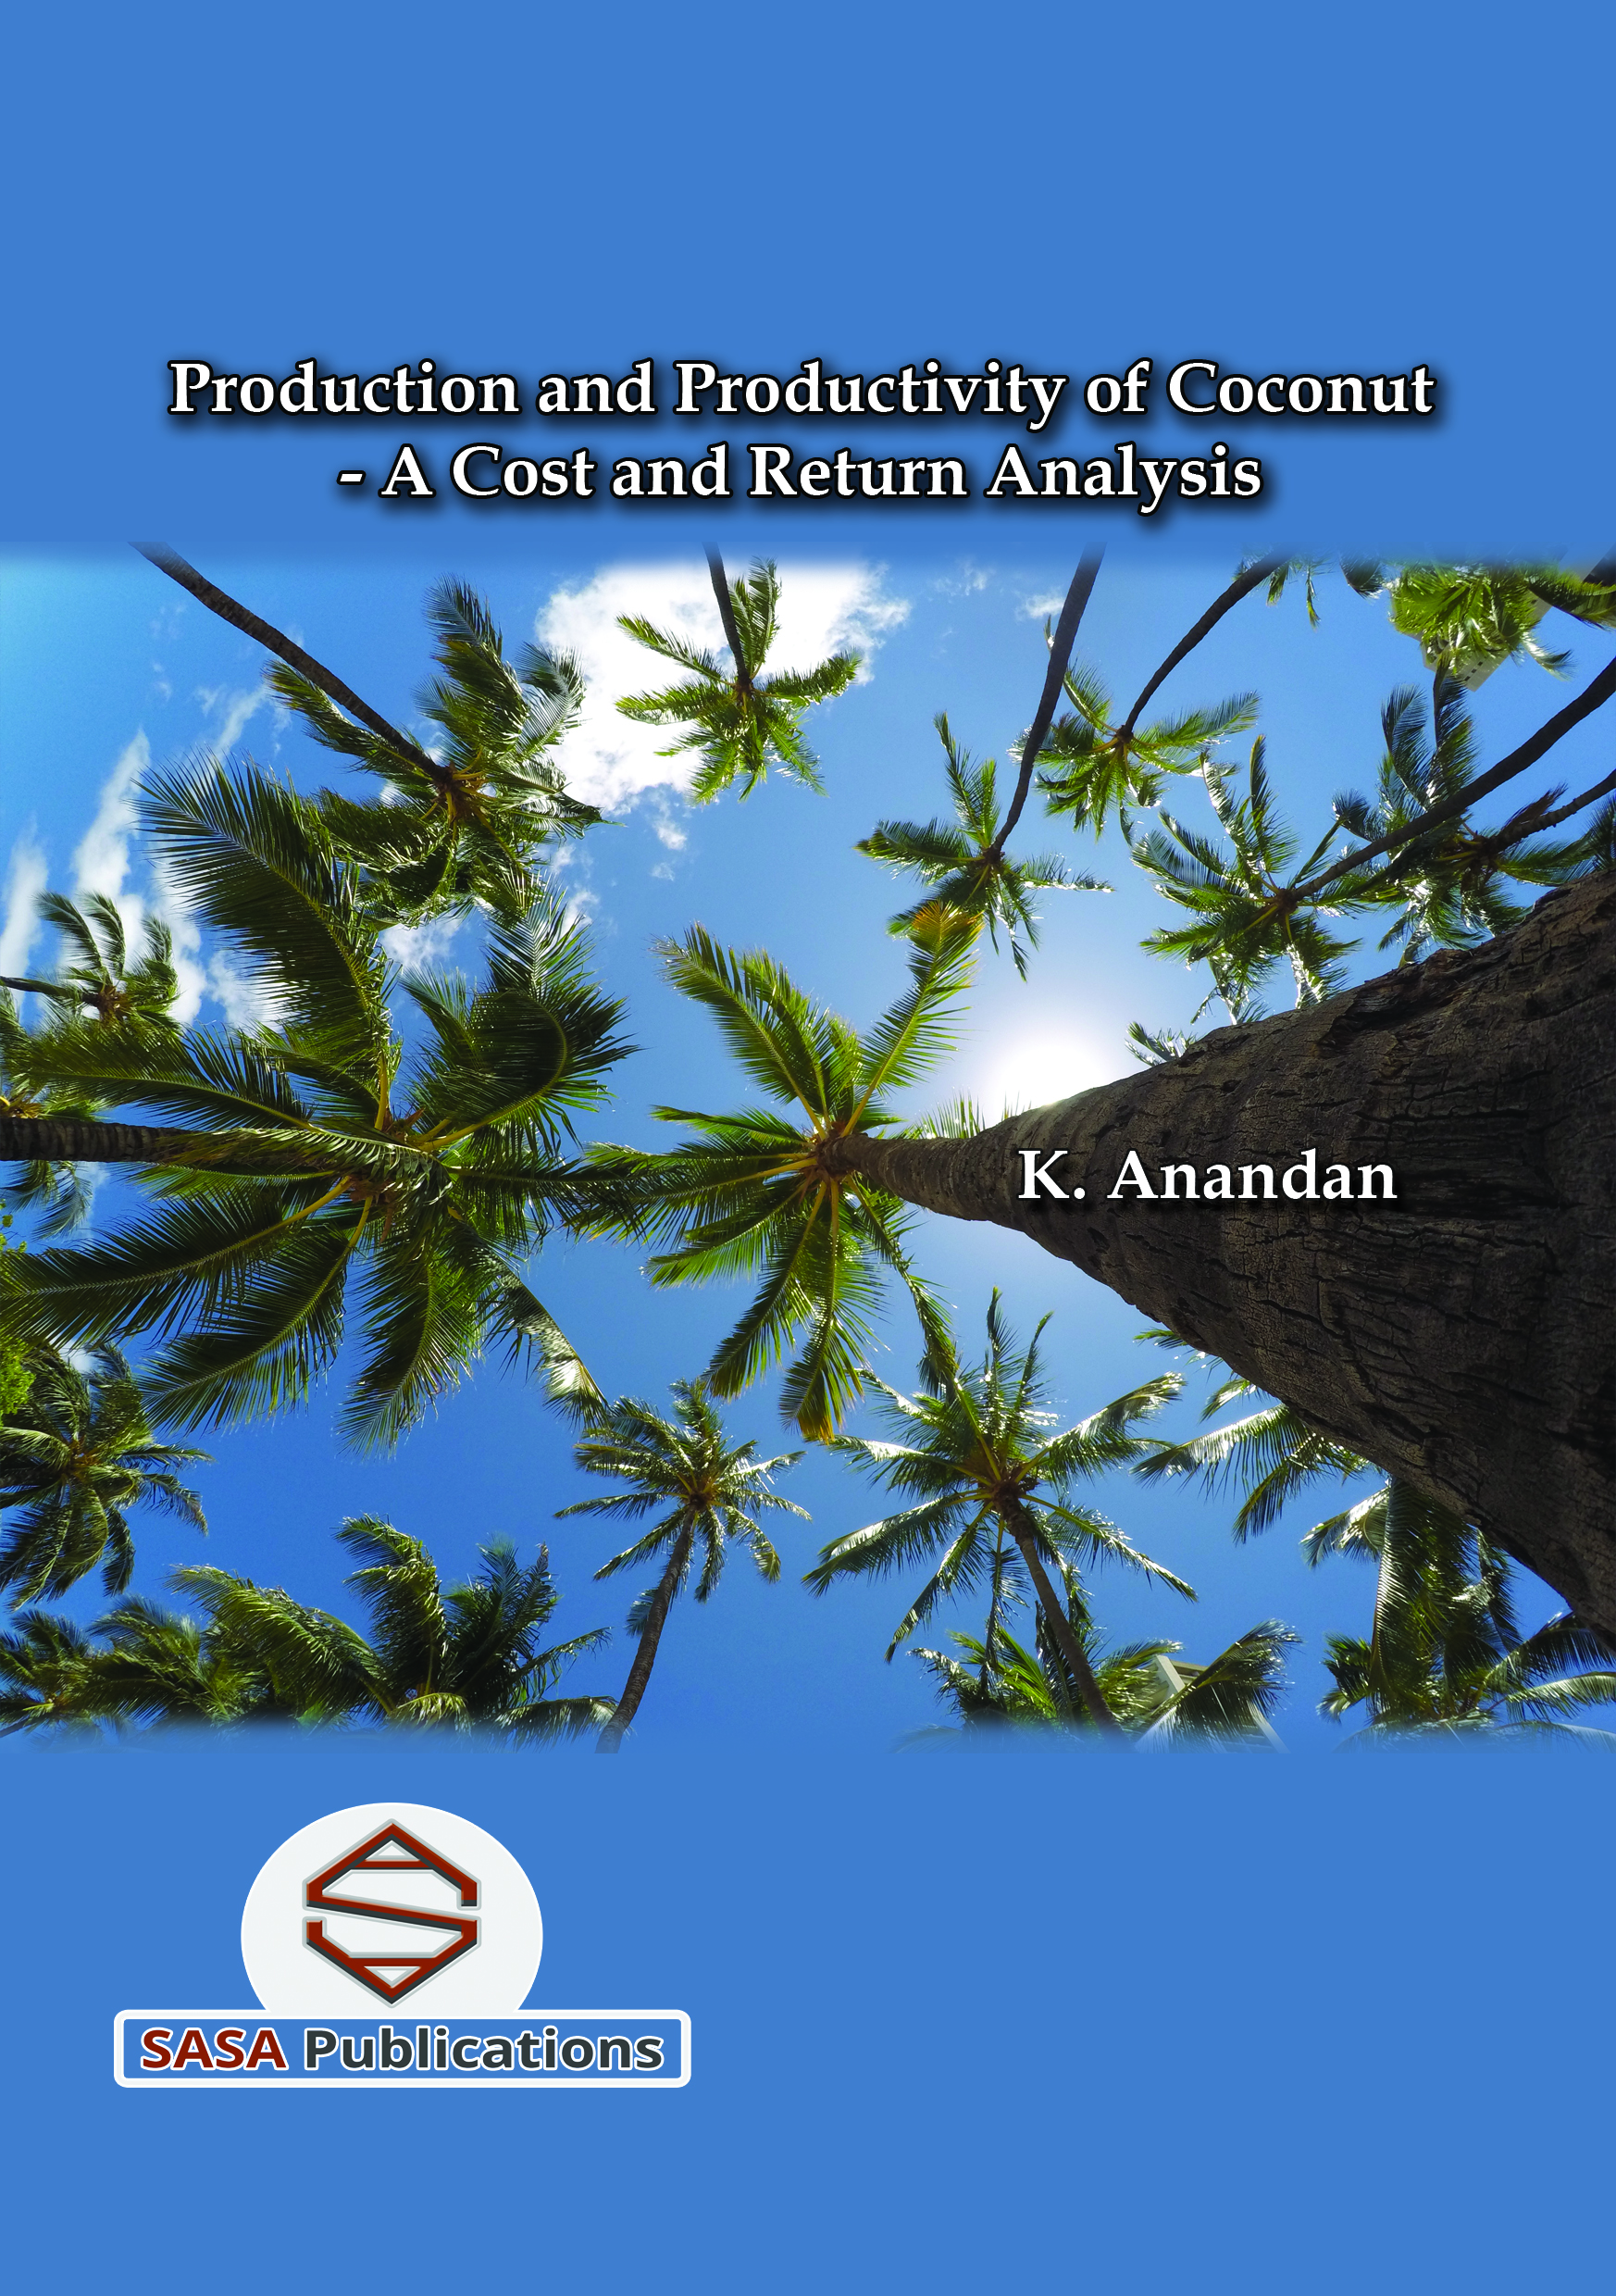 Production and Productivity of Coconut - A Cost and Return Analysis